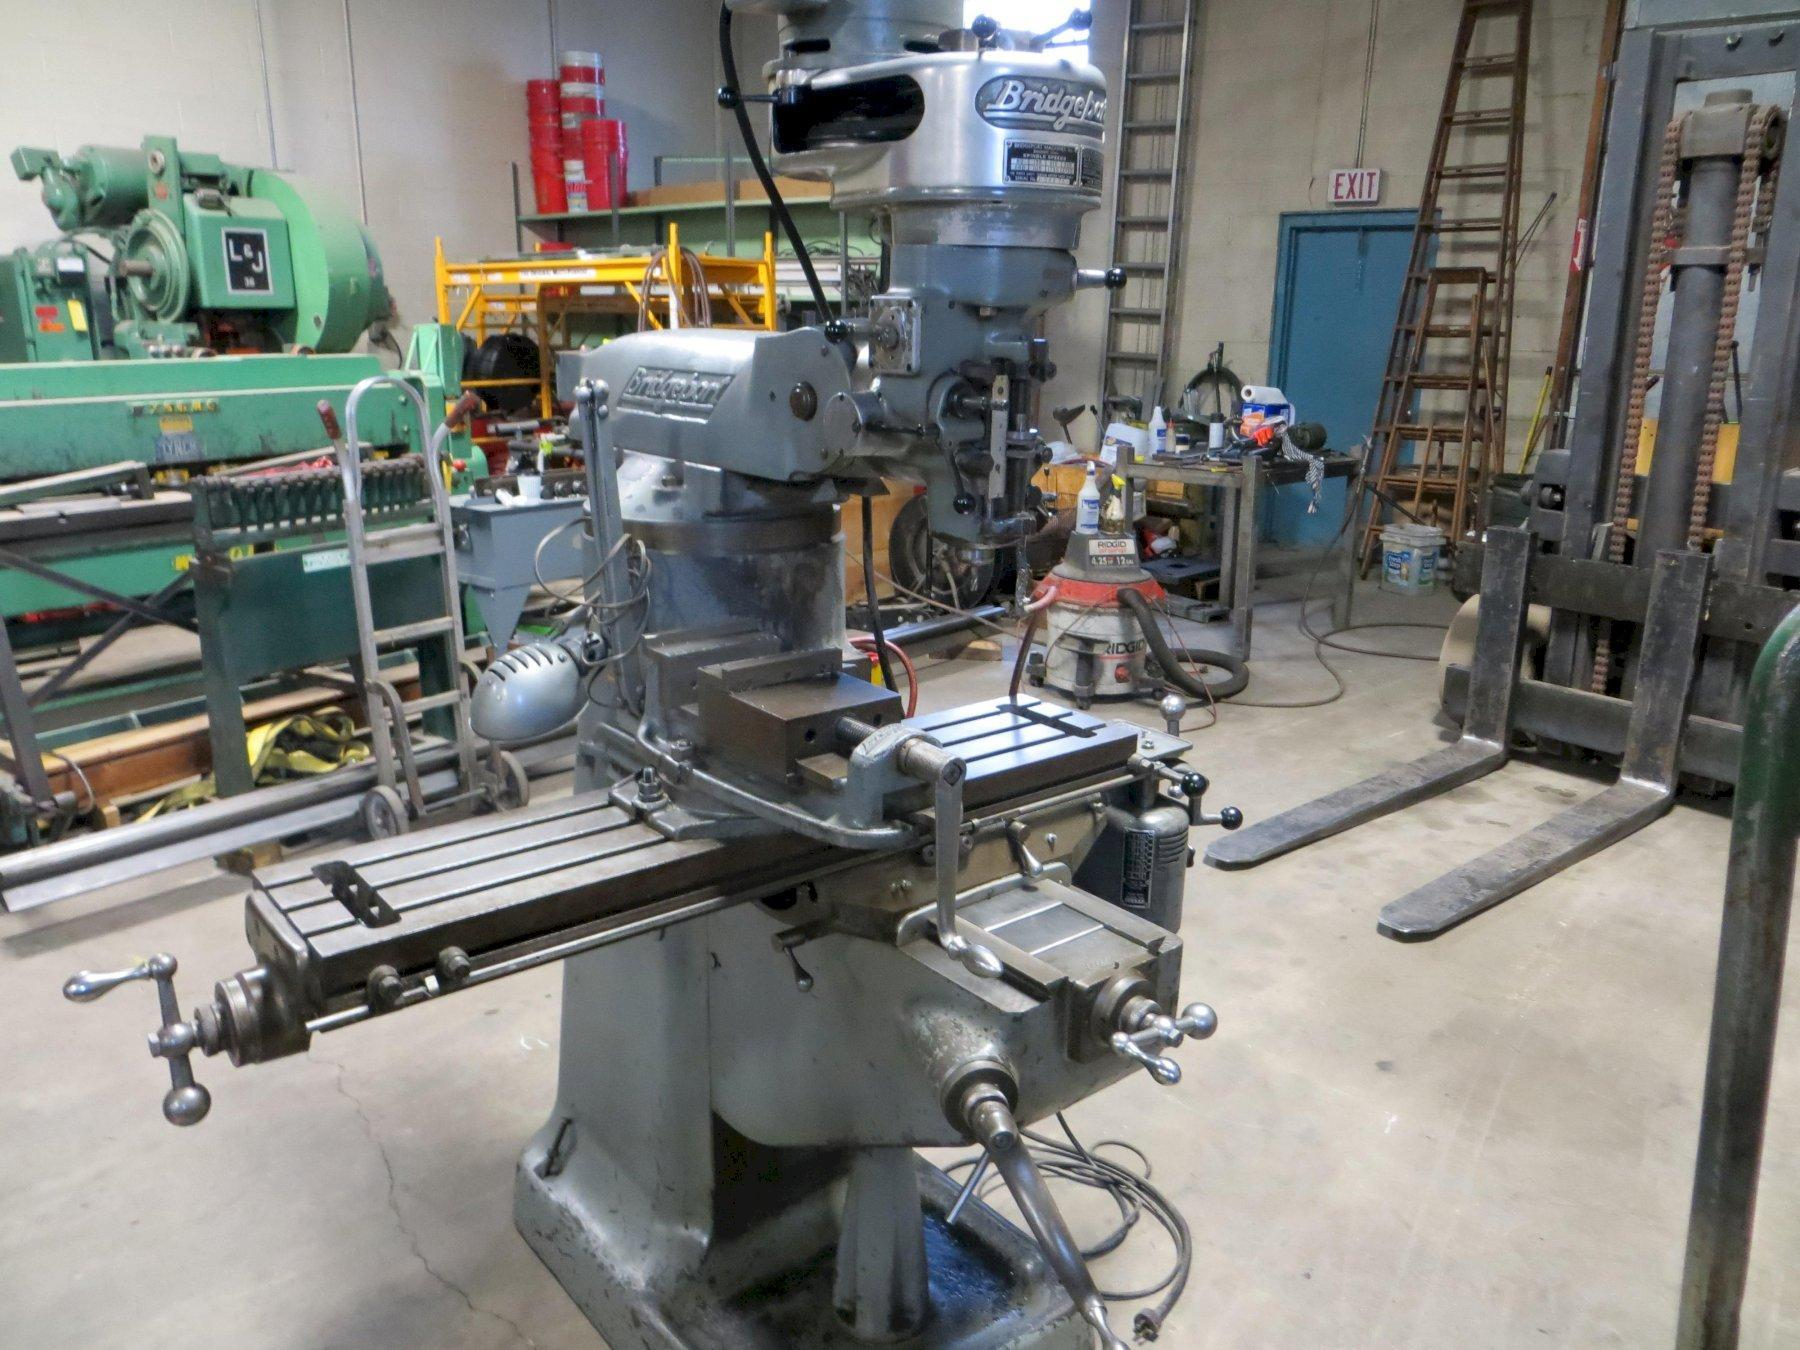 "3/4 HP Used Bridgeport Milling Machine, 9"" x 42"" Table, Single Phase"